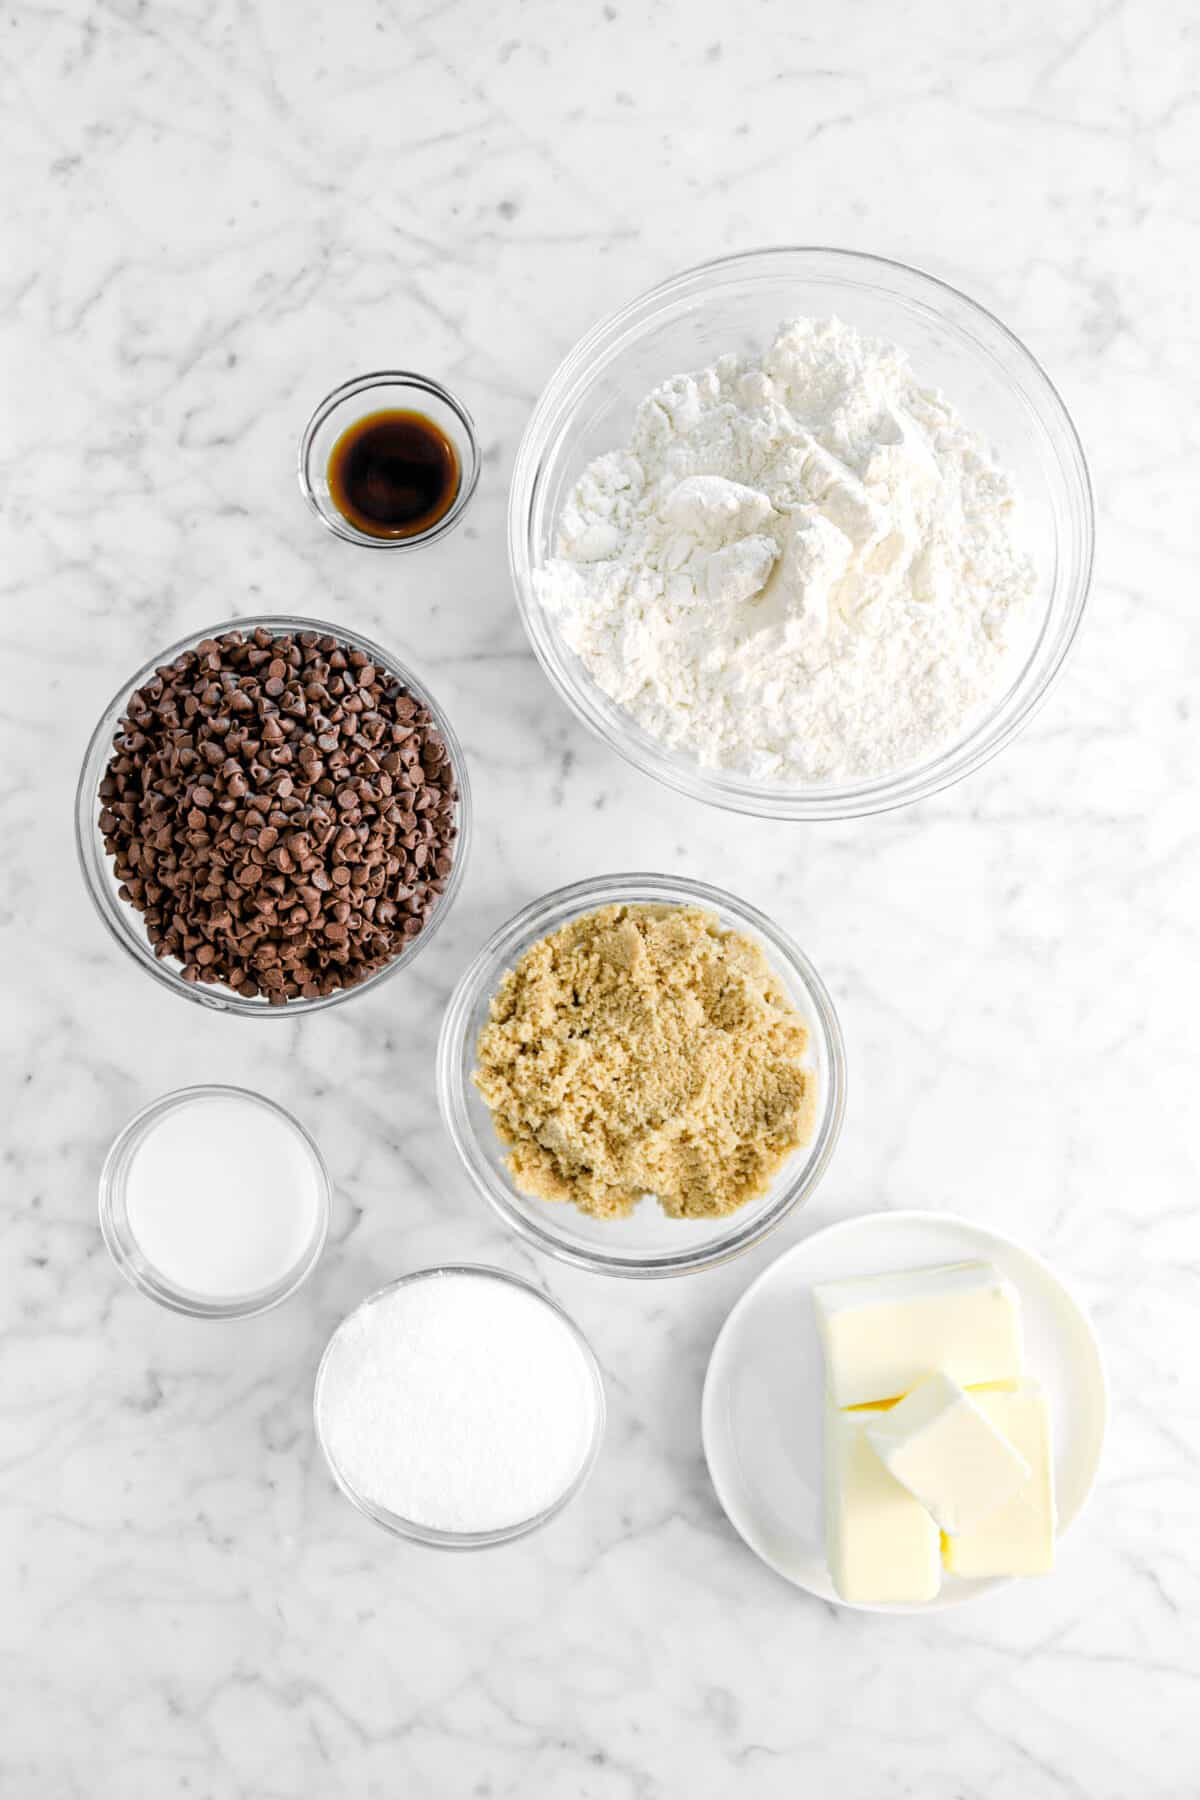 vanilla, flour, chocolate chips, brown sugar, milk, sugar, and butter on marble counter